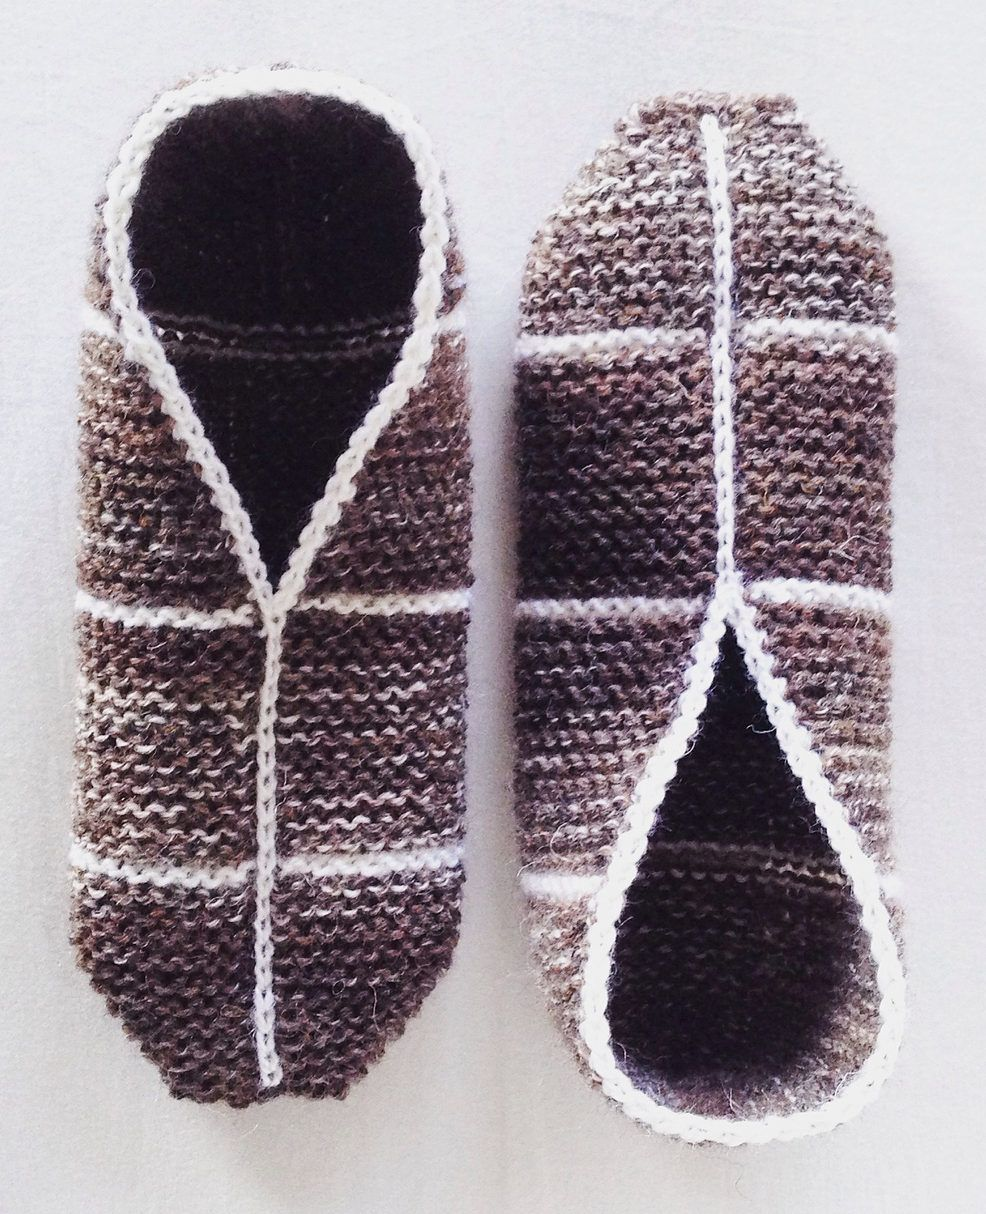 Free knitting pattern for simple garter stitch slippers hanna free knitting pattern for simple garter stitch slippers hanna levniemi designed these easy slippers knit flat in simple garter stitch and seamed with bankloansurffo Choice Image